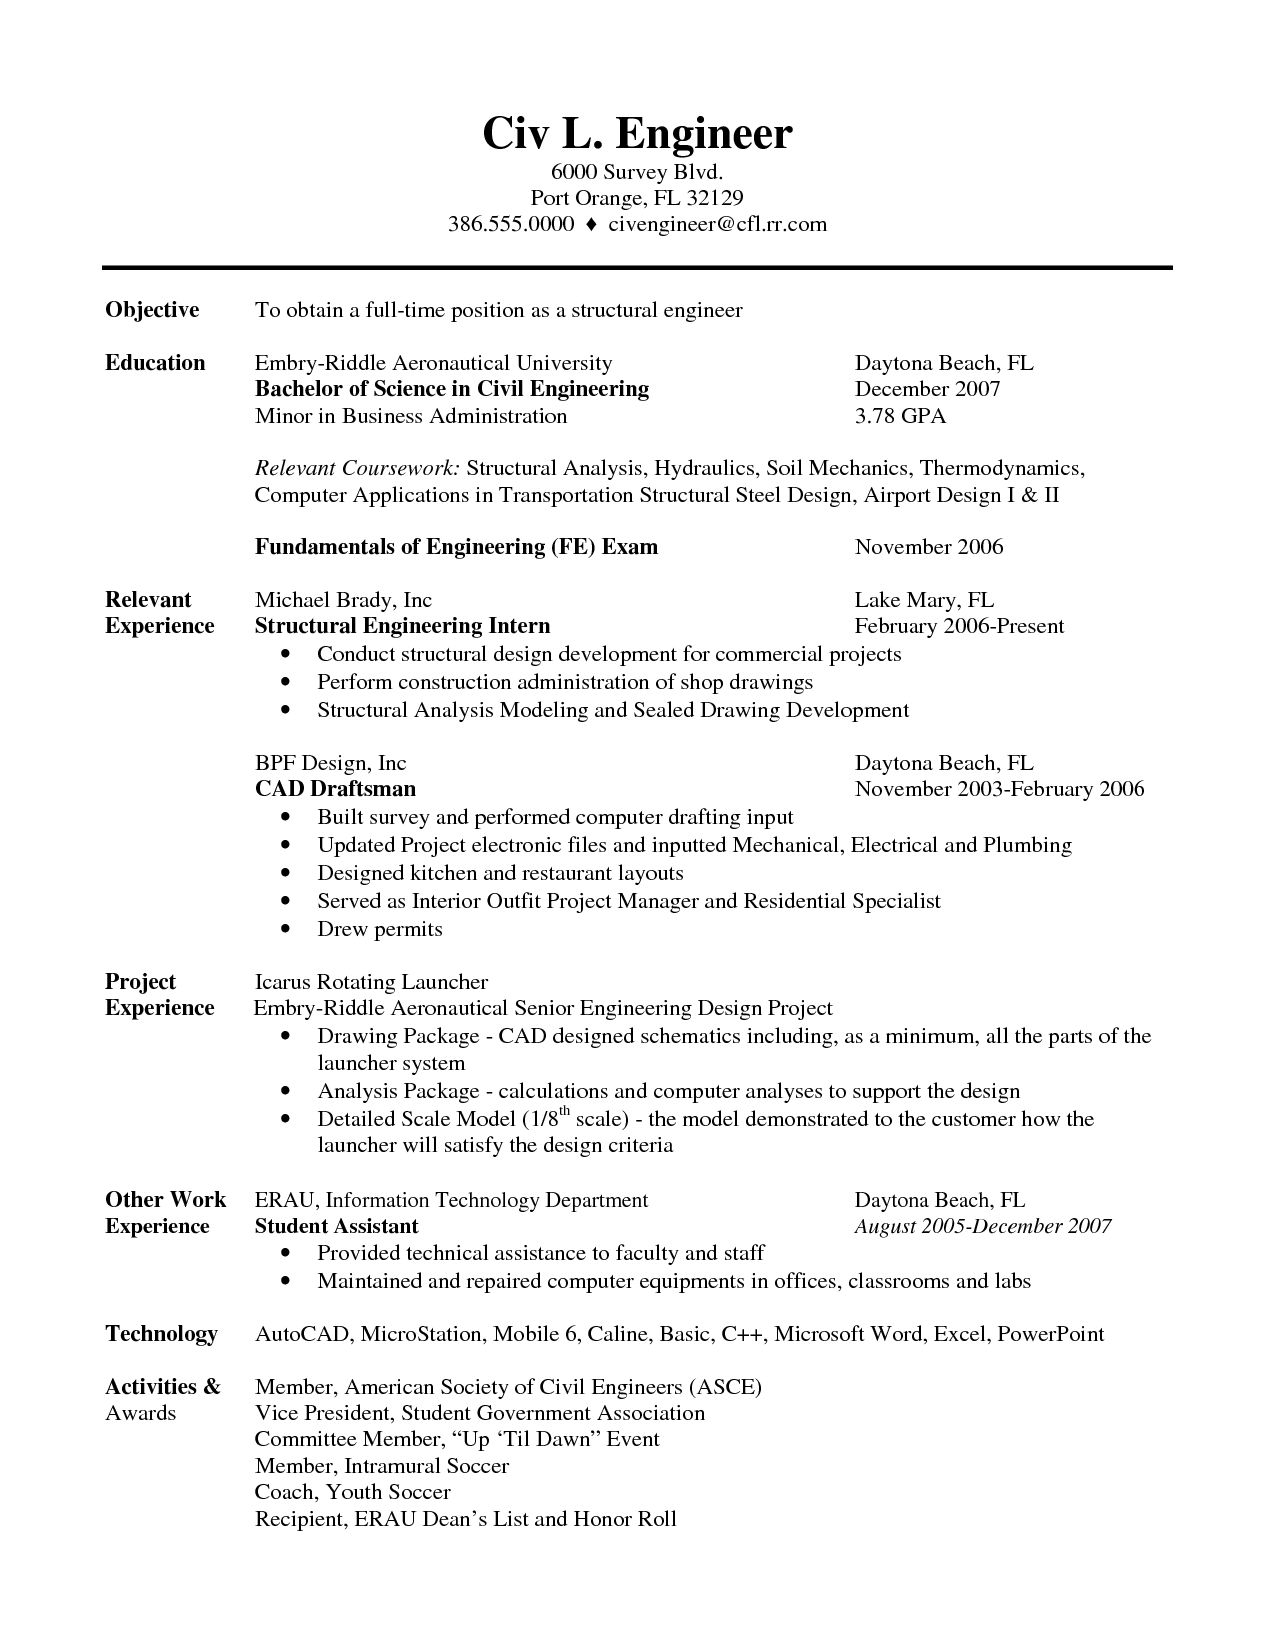 Resumes For Students Image Result For Mechanical Engineering Student Resume  Resumes